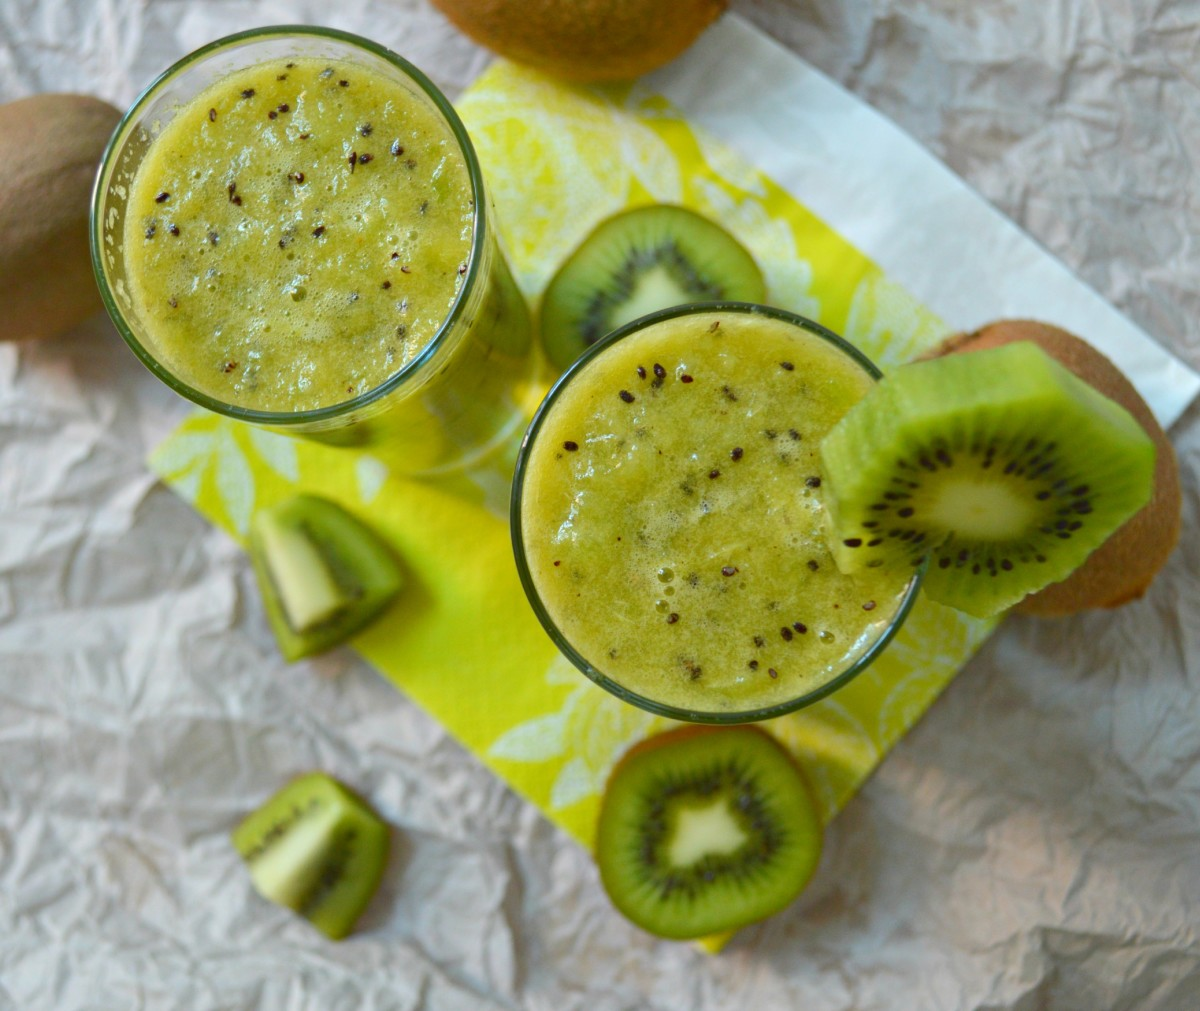 Next time you want to juice kiwis, think twice! Blending them for a few seconds only ensures the seeds remain whole and the drink looks buzz-worthy!